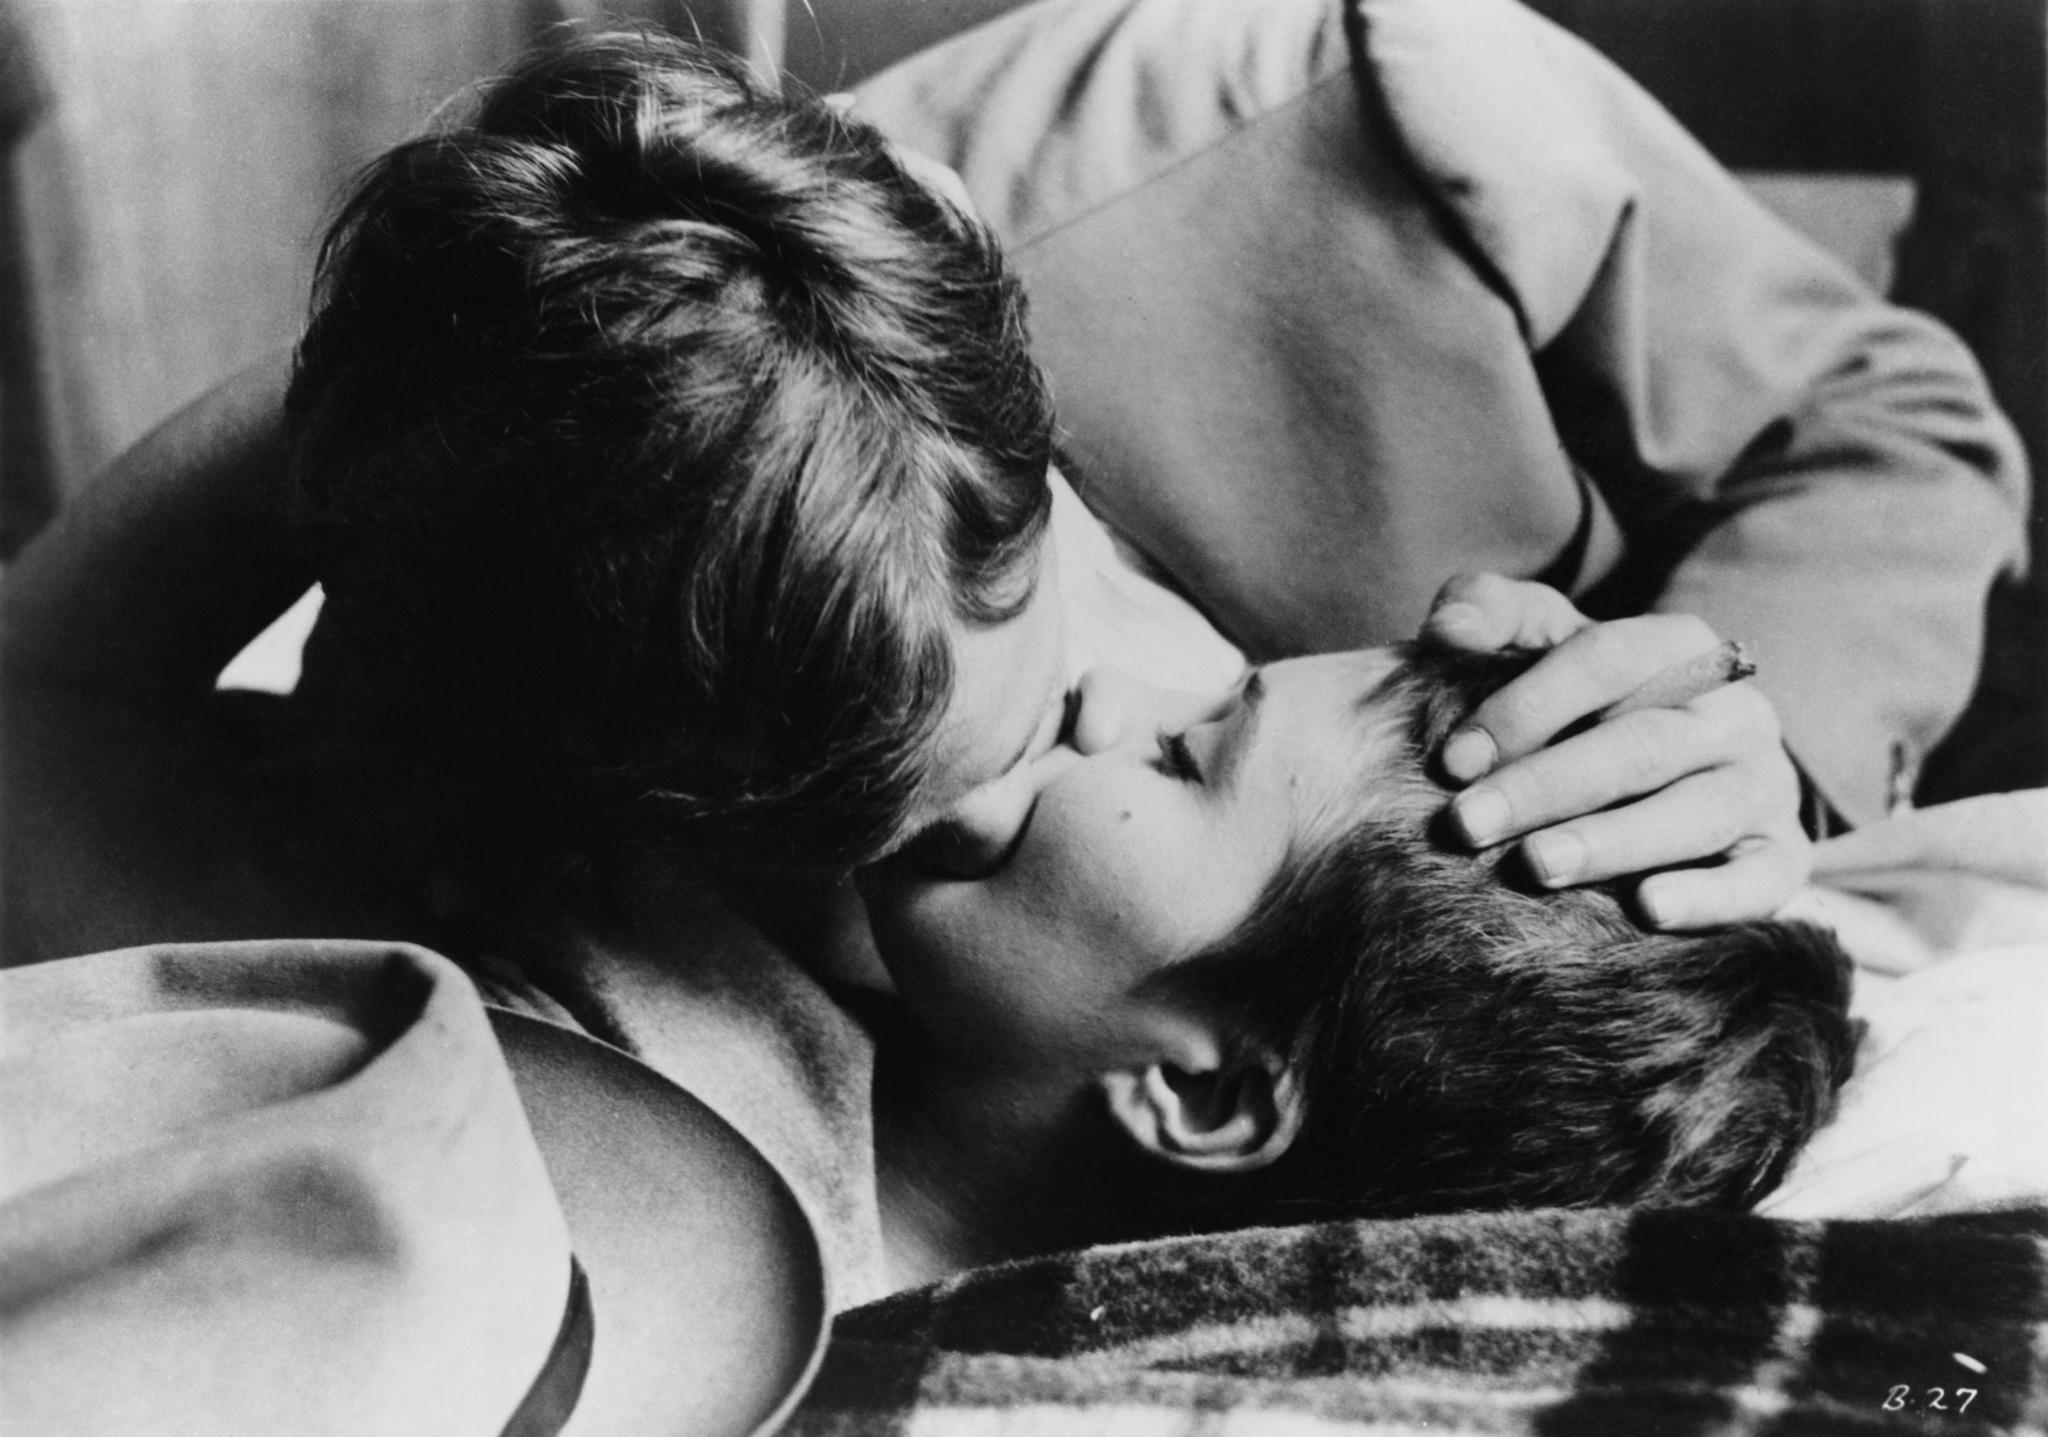 American Actress Jean Seberg 1938 1979 As Patricia Franchini And French Actor Jean Paul Belmondo As Michel Poiccard In A Love Scene From Breathless A Bout De Souffle Directed By Jean Luc Godar